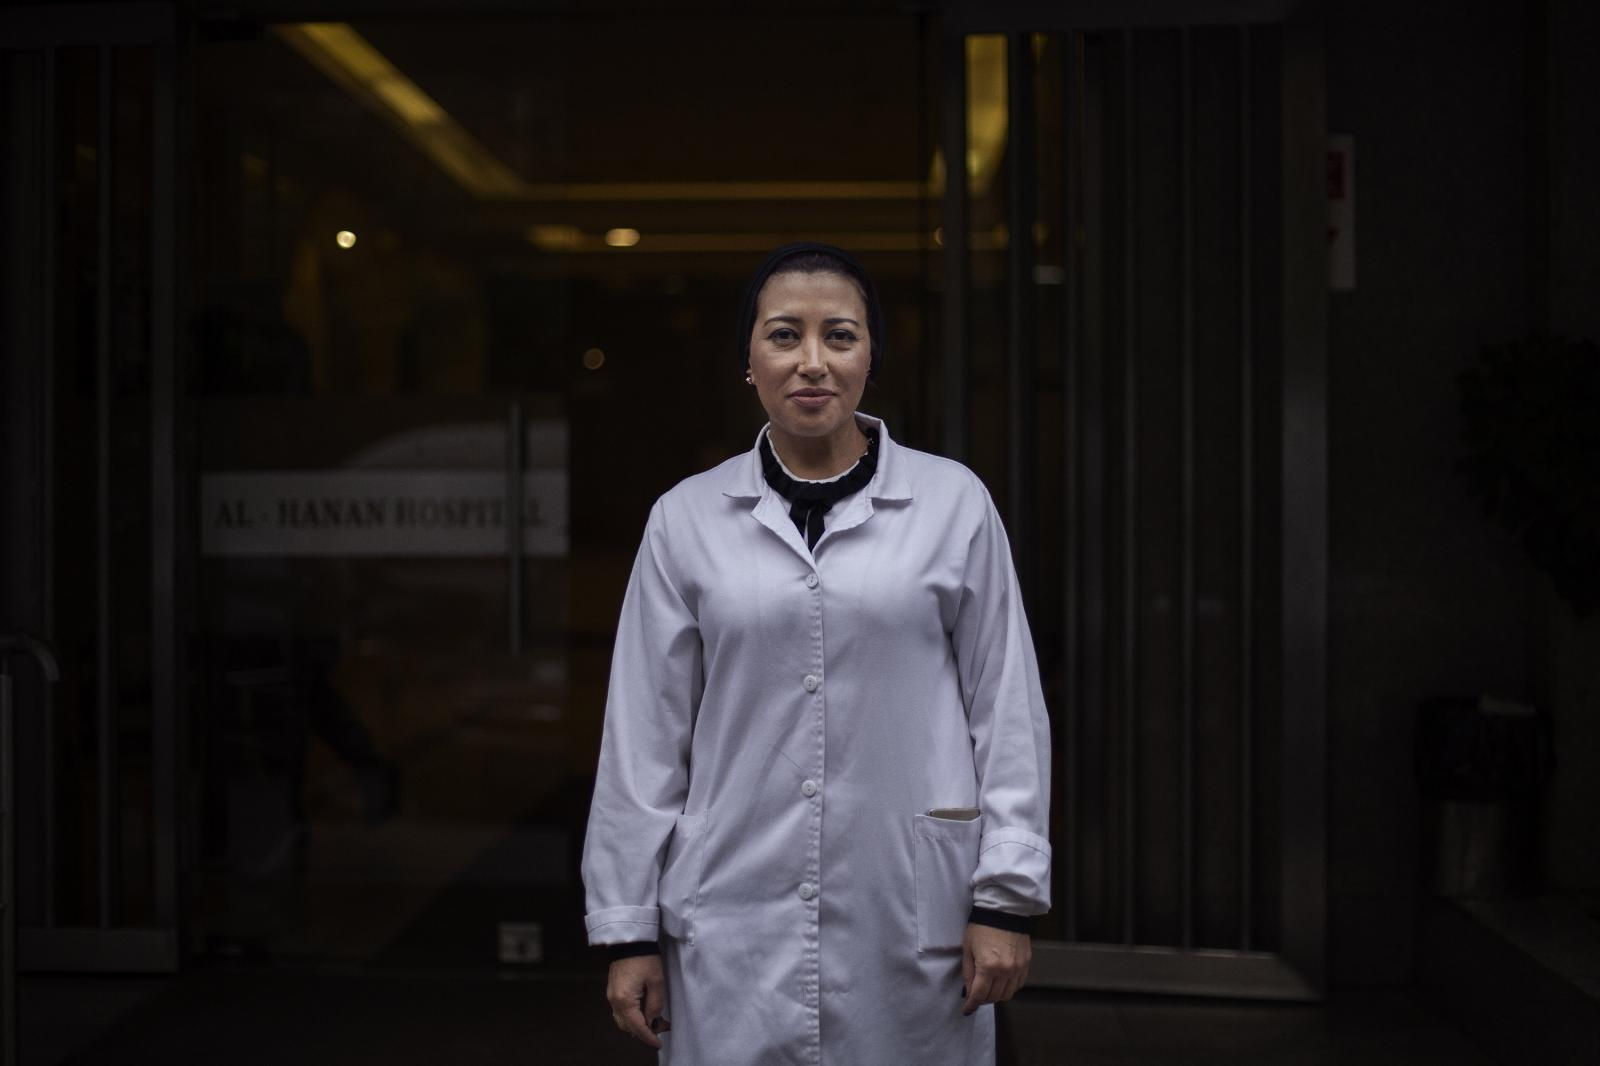 """Dr Manal Farran, ER doctor: """" We have been very affected by the crisis. We have far less patients. If we continue like in this decline, it's going to be a huge issue where won't be able to get our medicine"""". Tripoli. Lebanon. December 11th, 2019. Diego Ibarra Sánchez for CNN"""